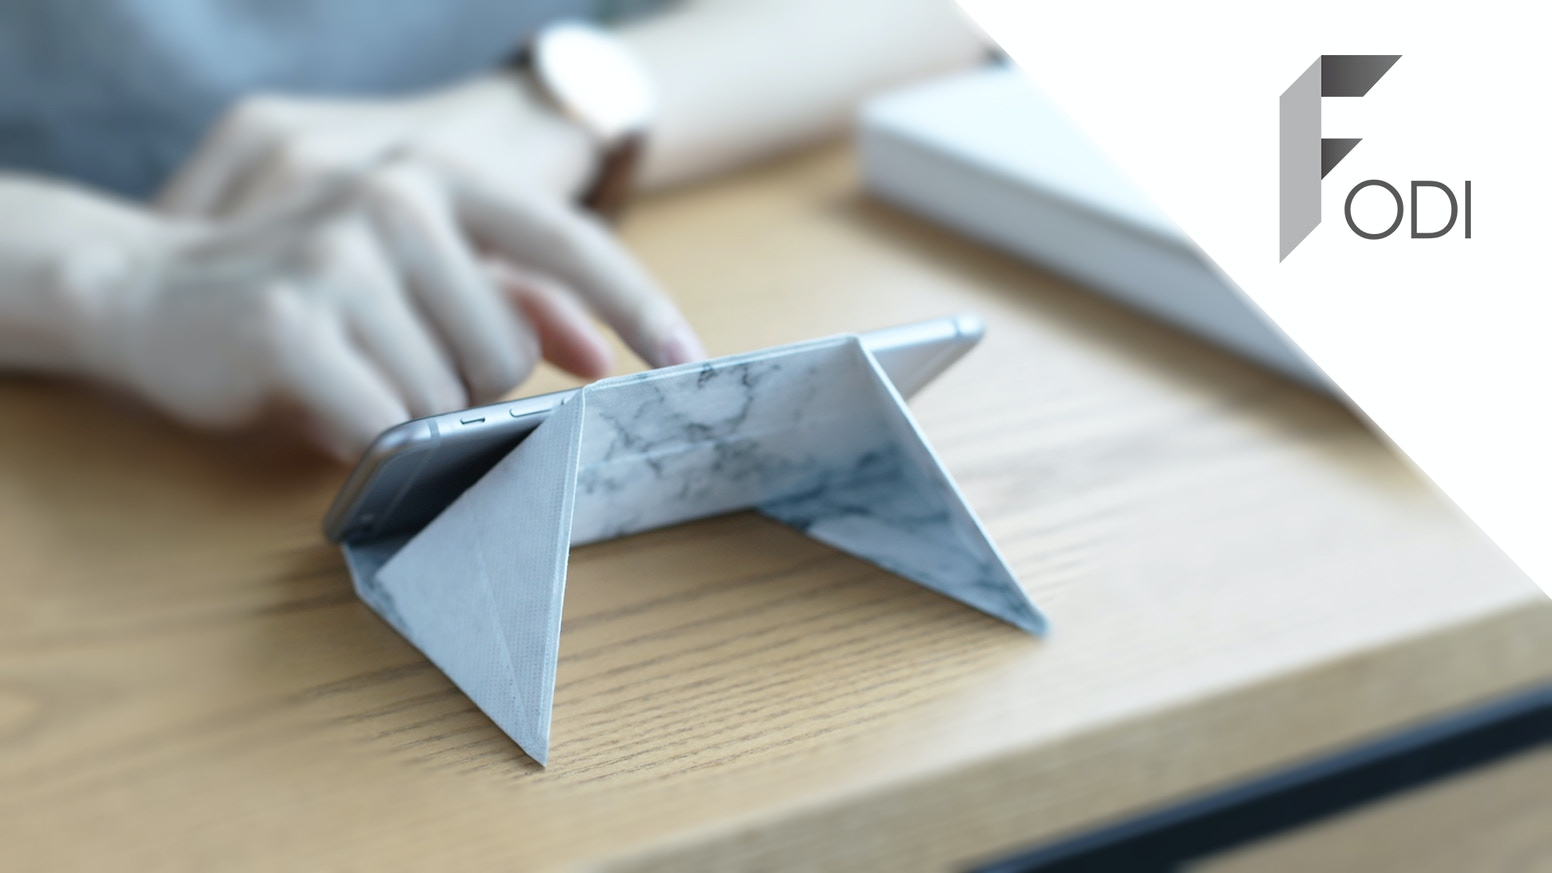 FODI Is An Origami Stand That Folds To Different Sizes Fit Your Mobile Devices